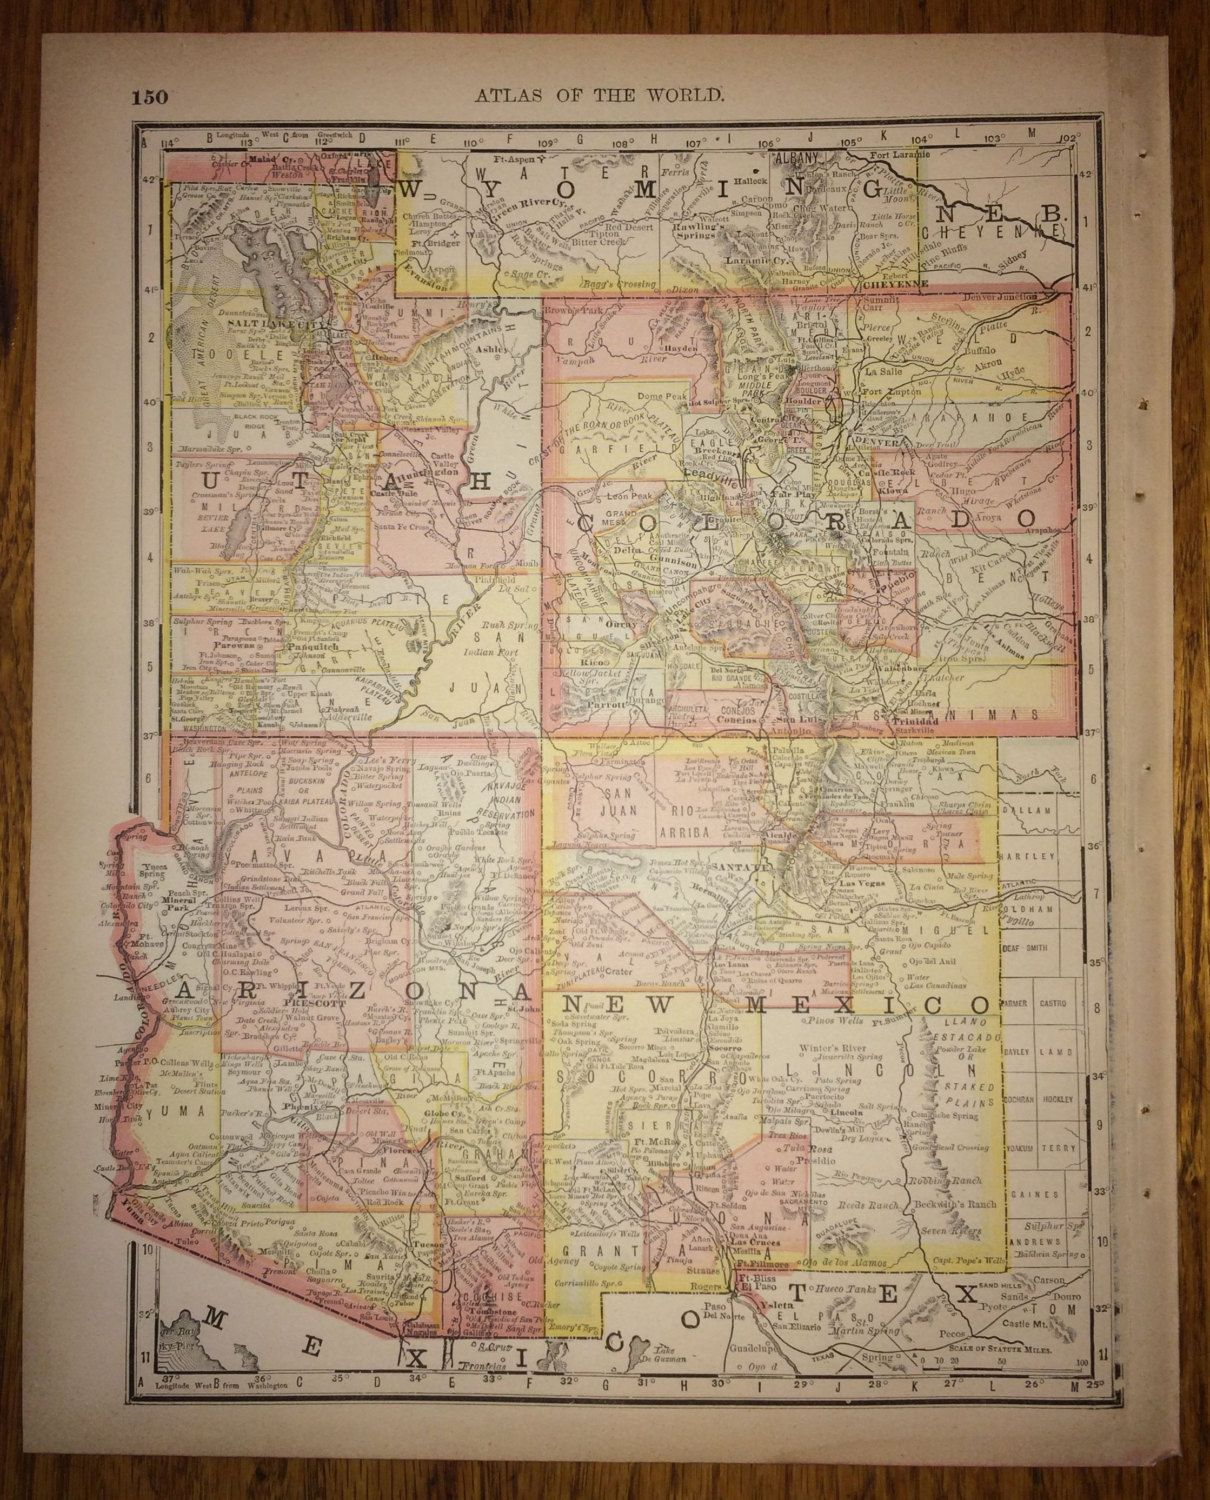 Utah colorado arizona new mexico large map 1888 rand mcnally 1888 utah colorado arizona new mexico large map 1500 use pin10 at checkout for 10 off gumiabroncs Image collections